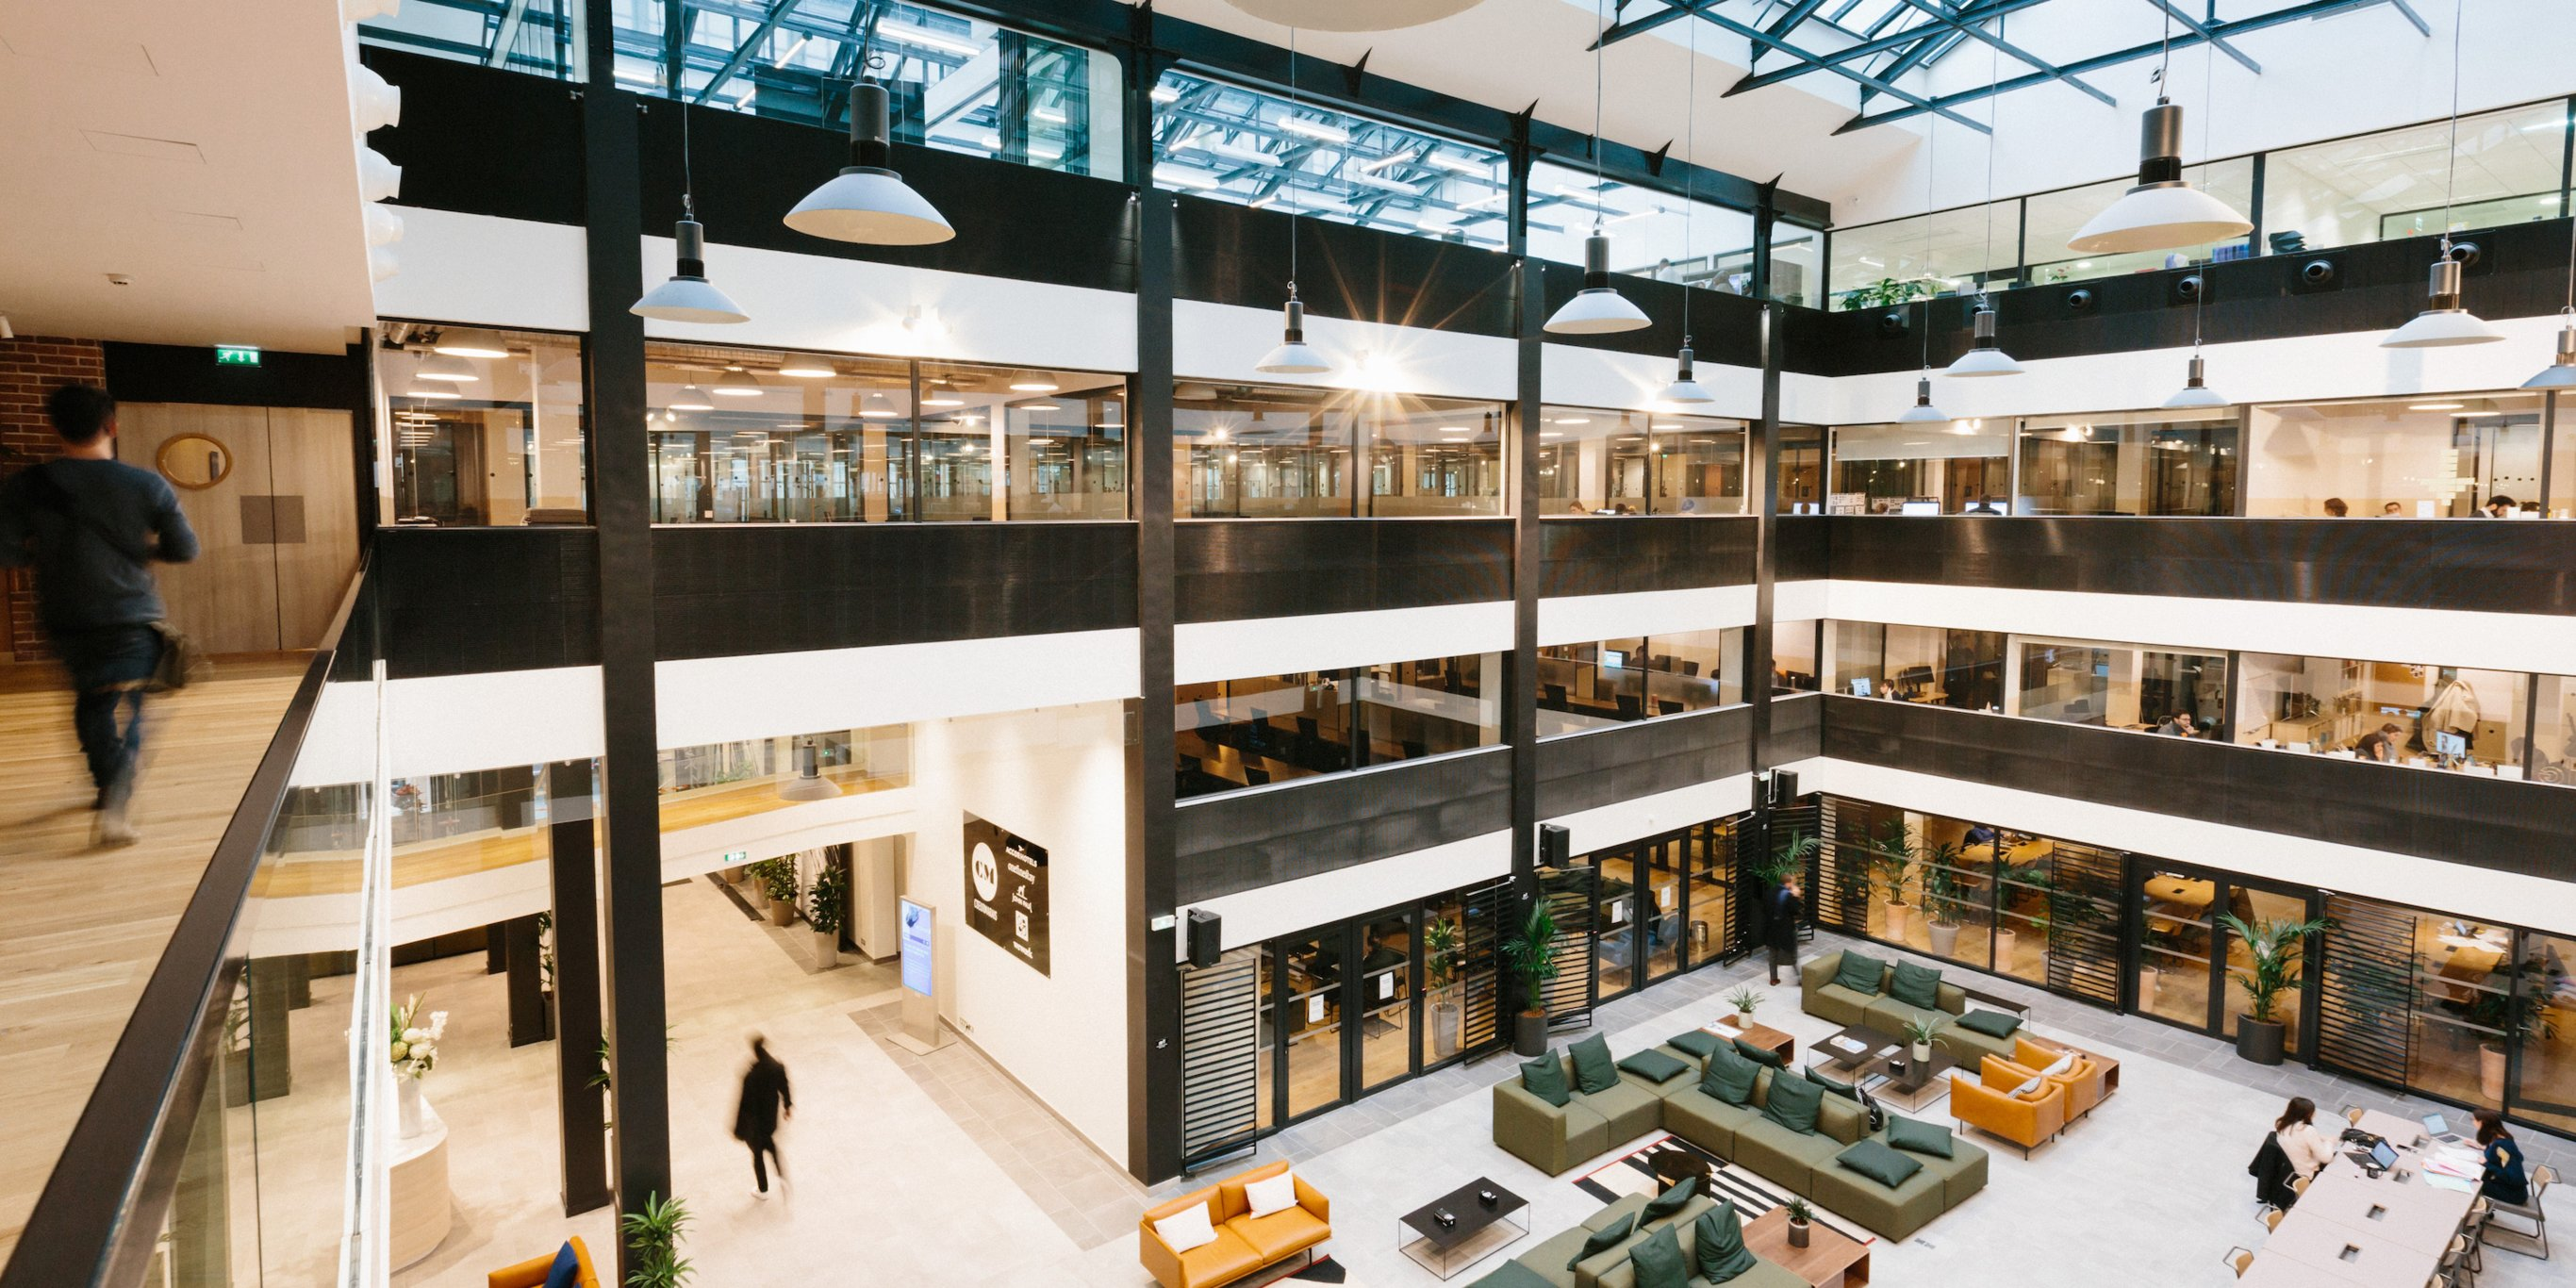 WeWork shelves IPO for now under new leadership